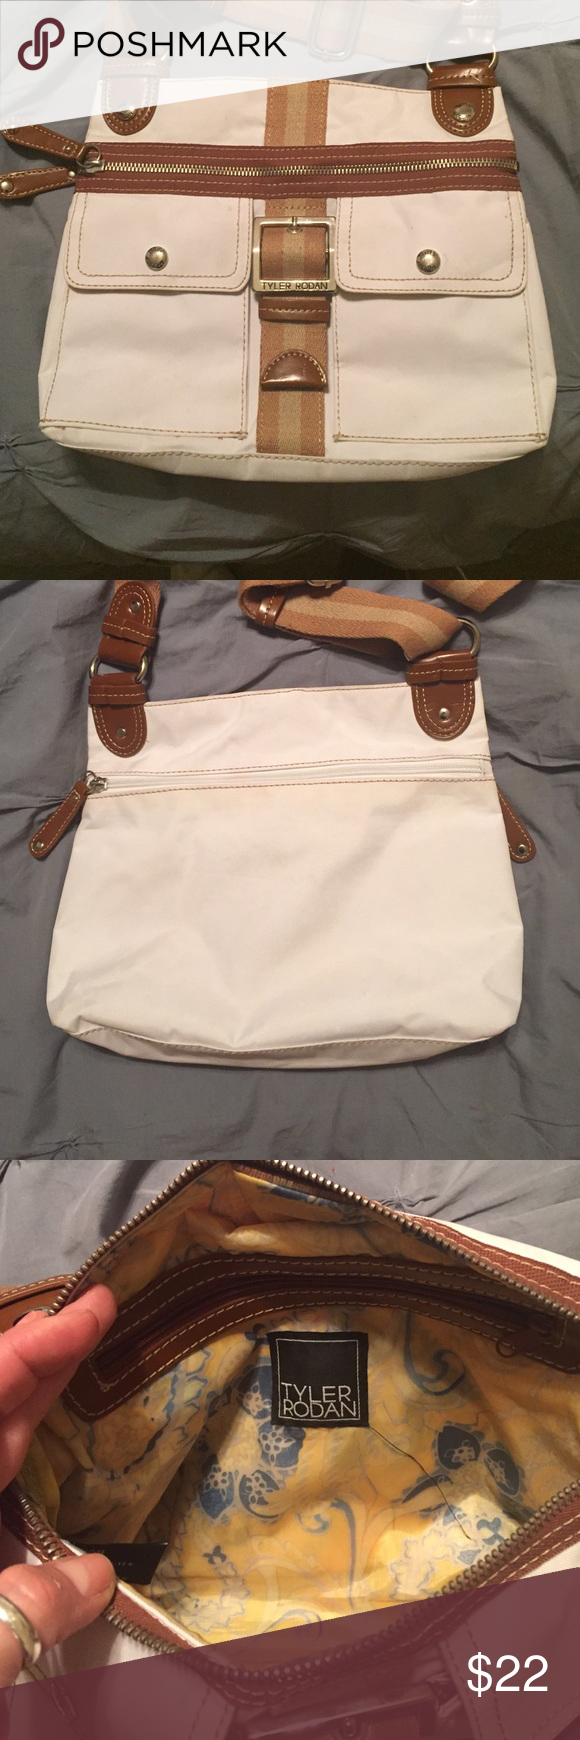 Tyler Rodan Purse Very gently used Tyler Rodan purse. White with brown and tan shoulder strap and accents.  No stains or signs of wear. Super cute! Tyler Rodan Bags